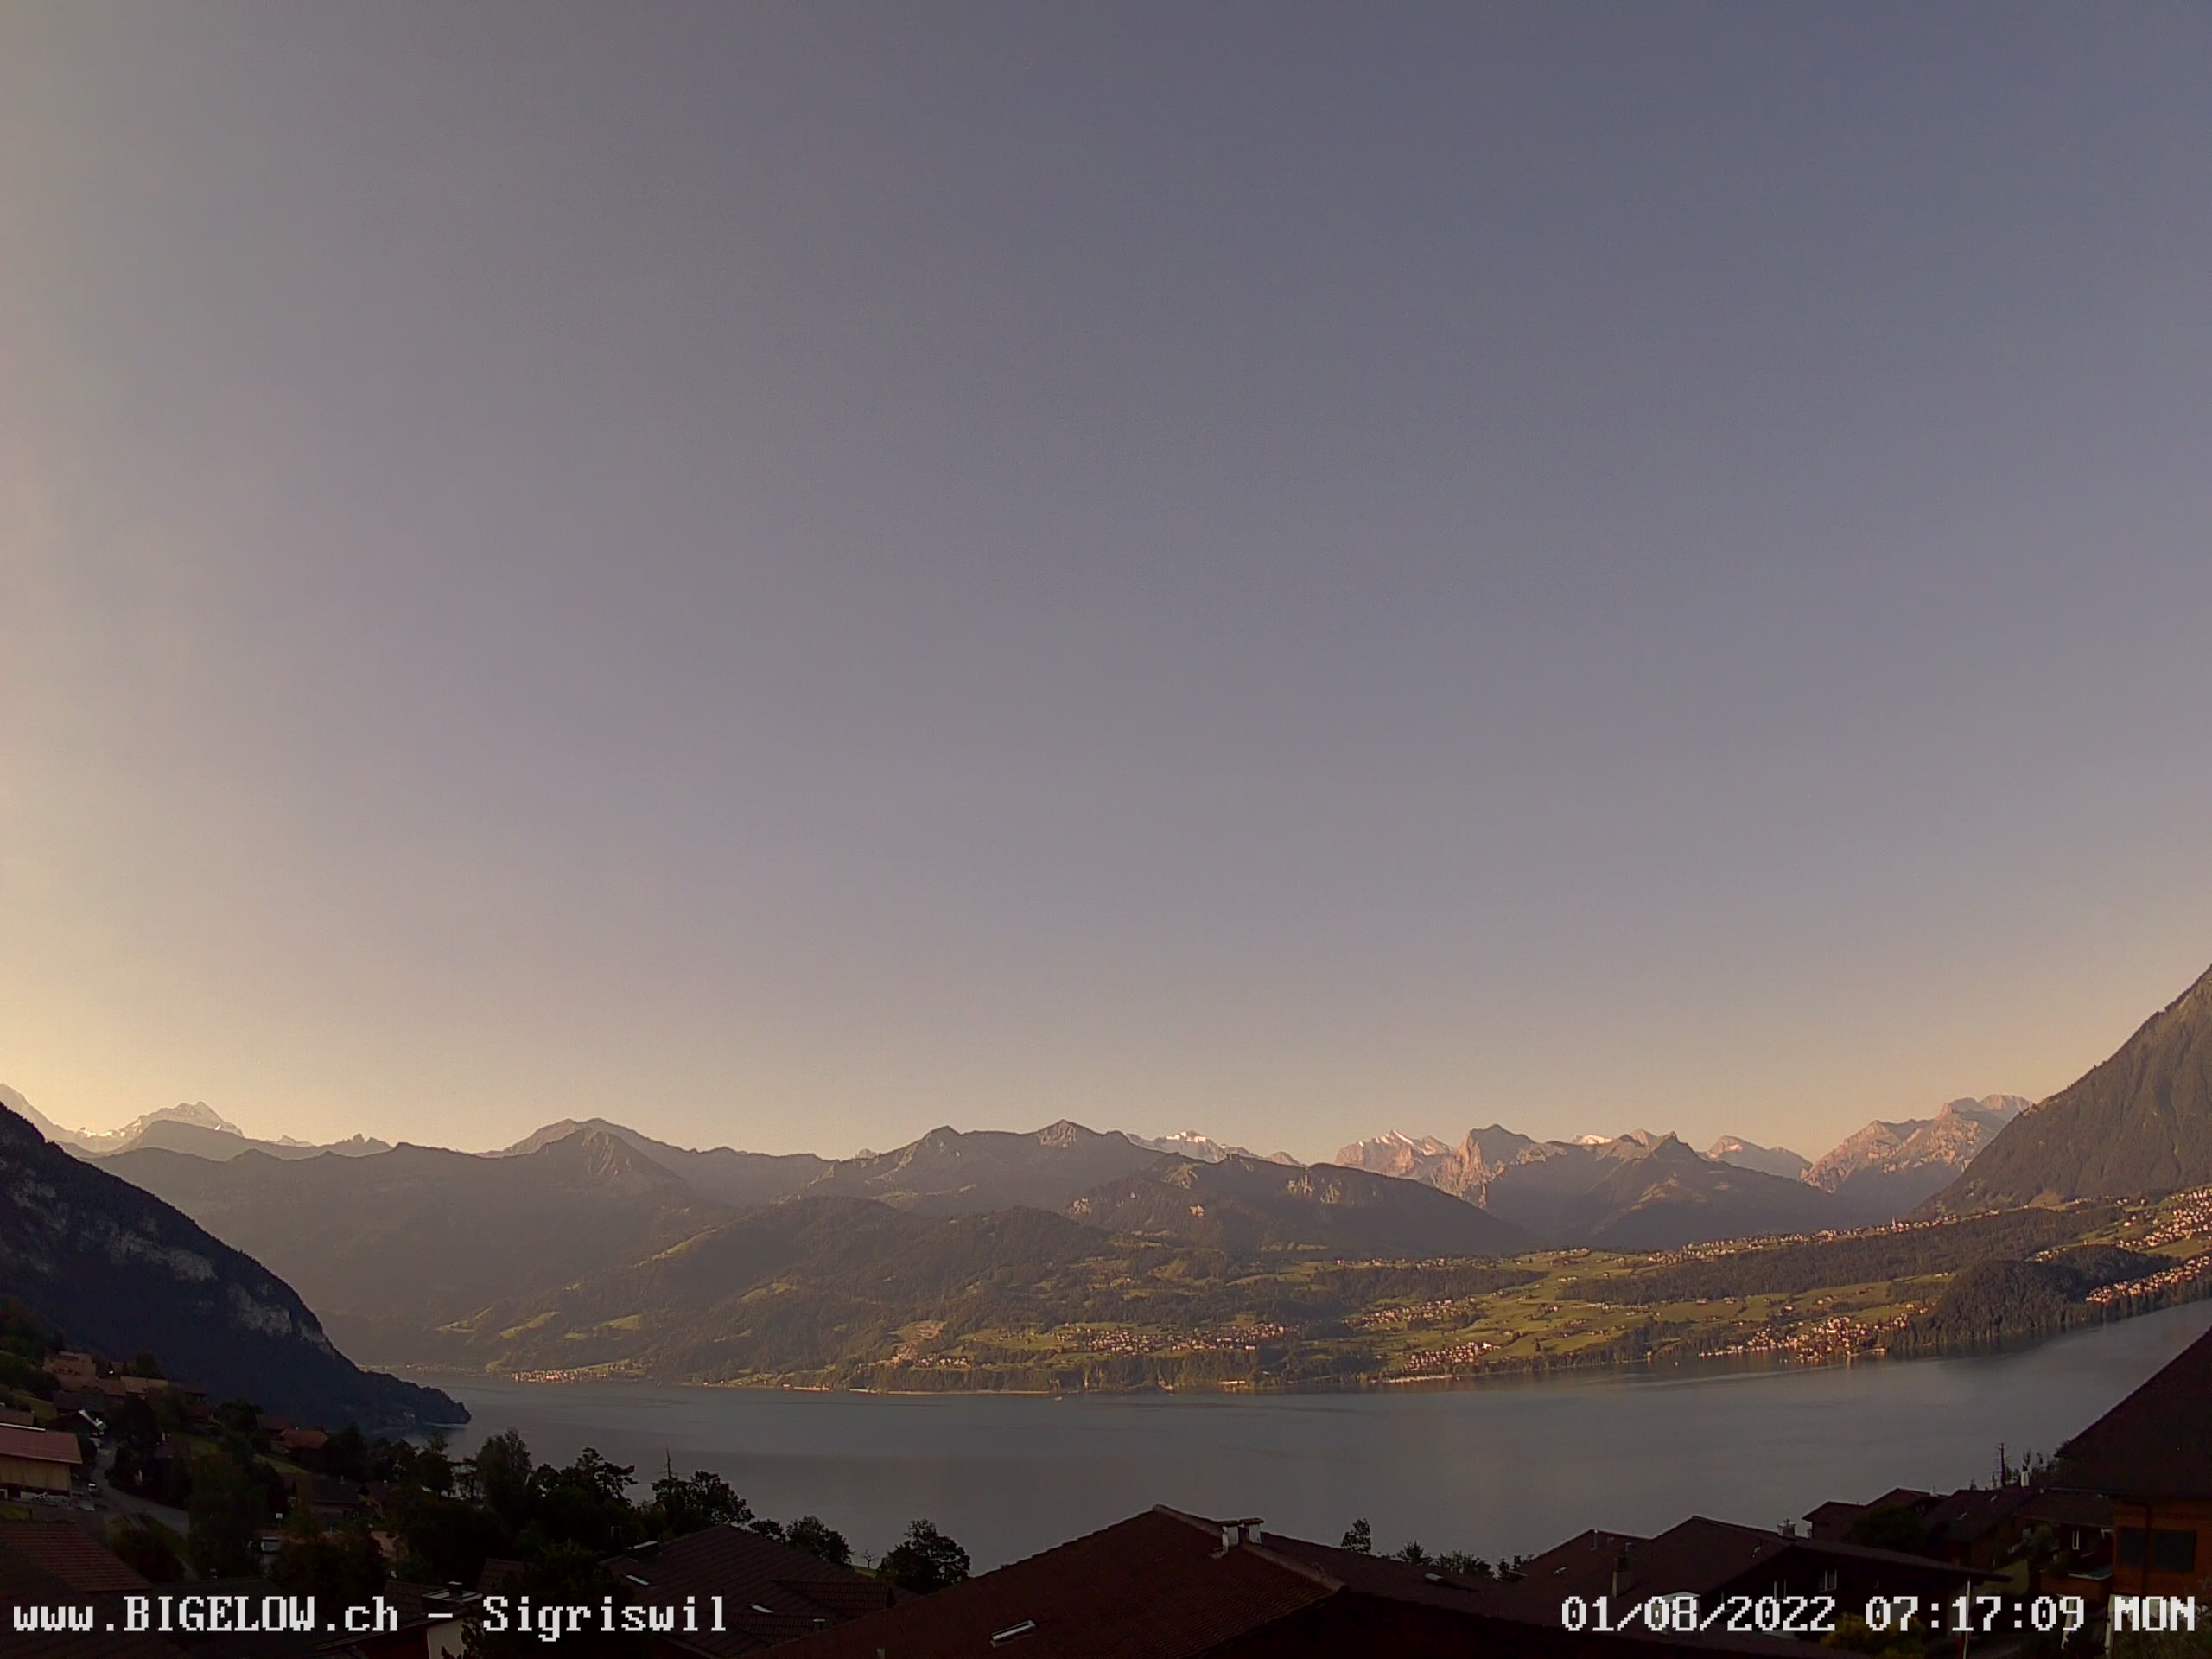 A view of Lake Thun from Sigriswil